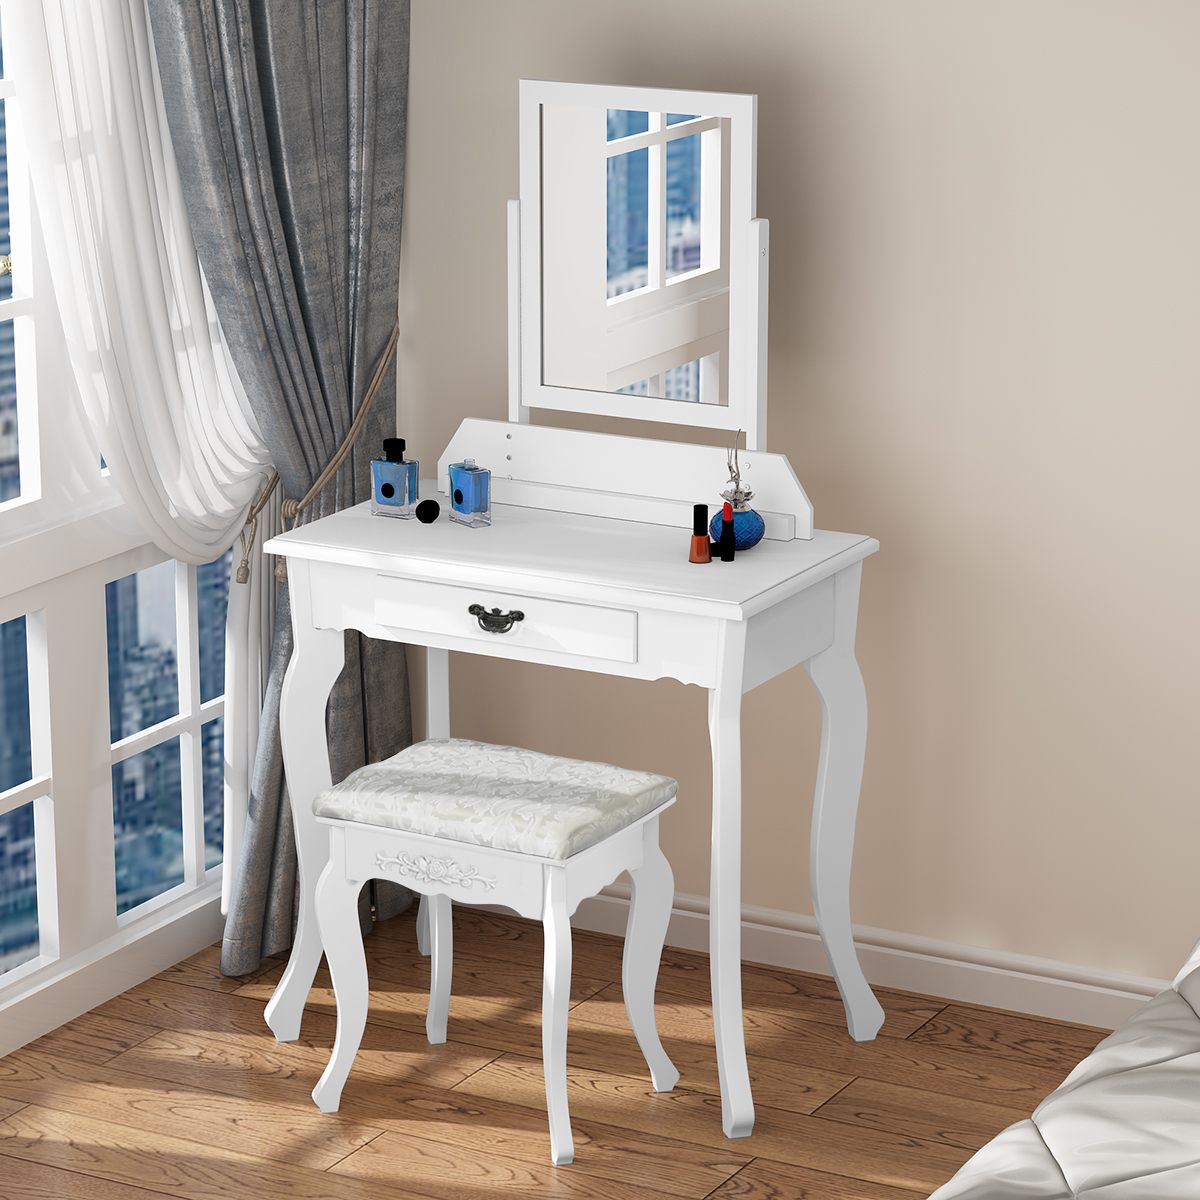 Wooden Dressing Table Makeup Desk With Stool Square Mirror 1 Drawer White Pine Dropshipping giantex wood makeup dressing table stool set jewelry desk drawer mirror black home furniture hw52951bk